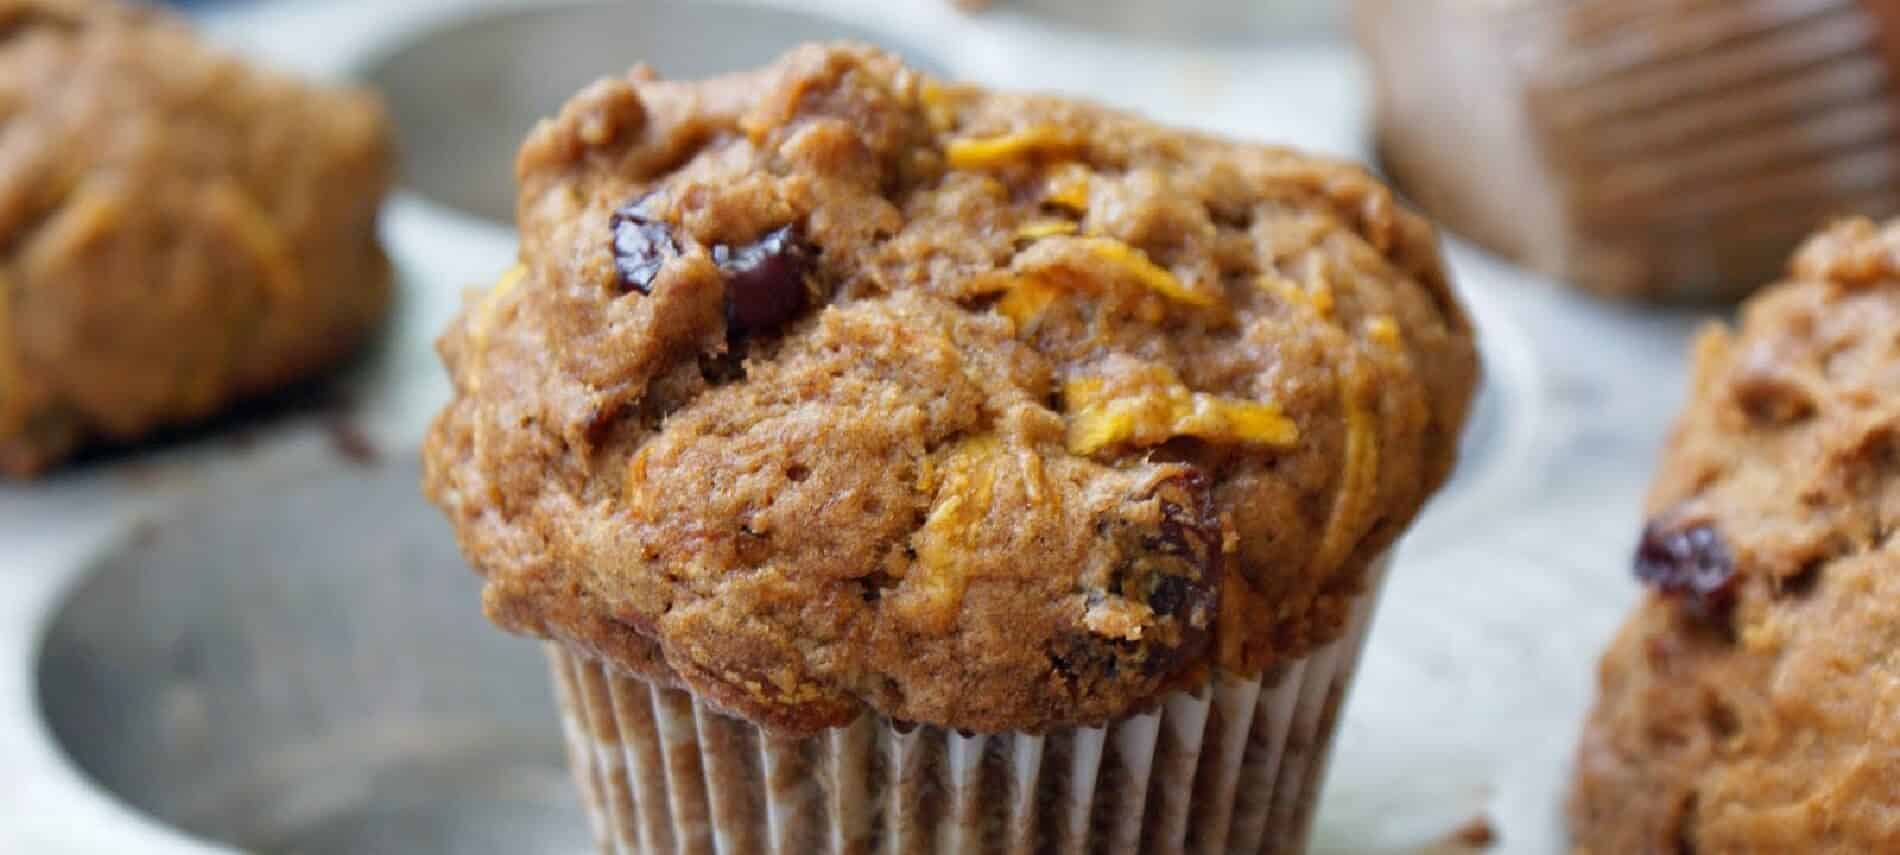 Delicious carrot and fruit muffin with a white wrapper on a white plate